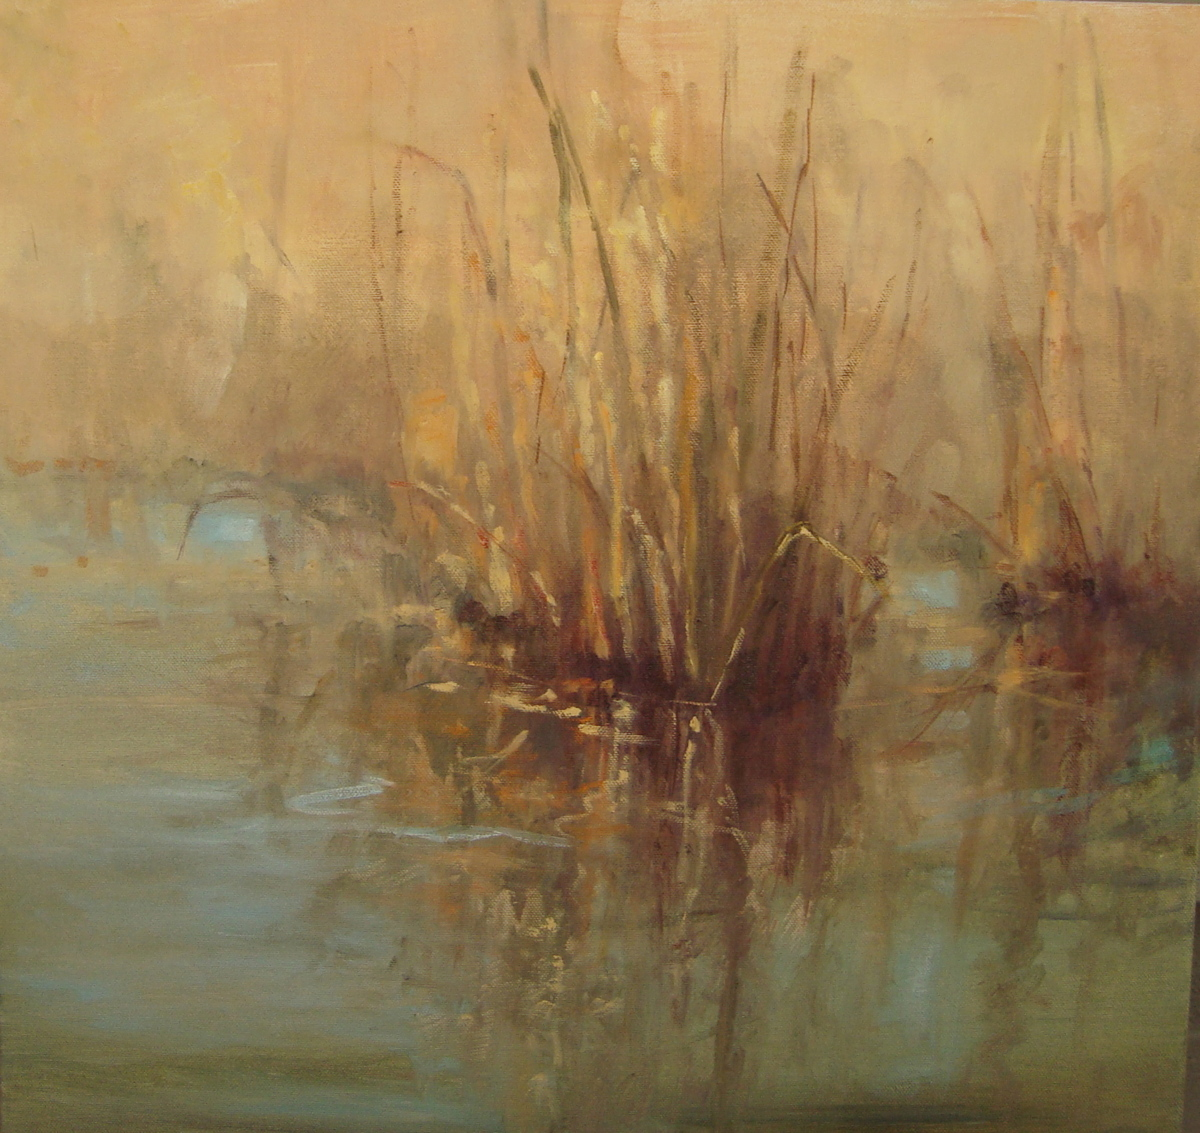 Reeds in the Mist (large view)